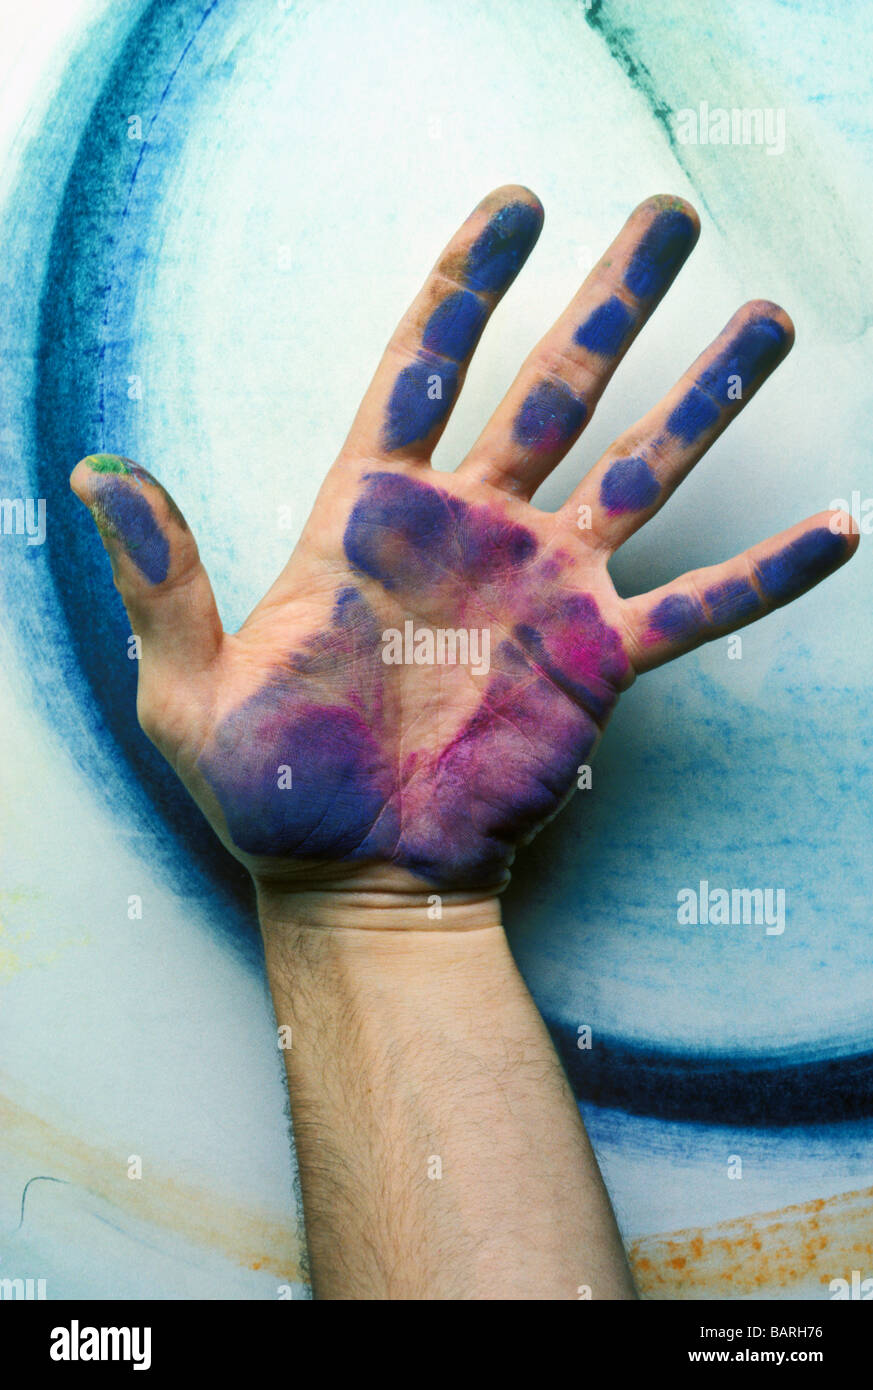 Man s hand with chalk on it - Stock Image